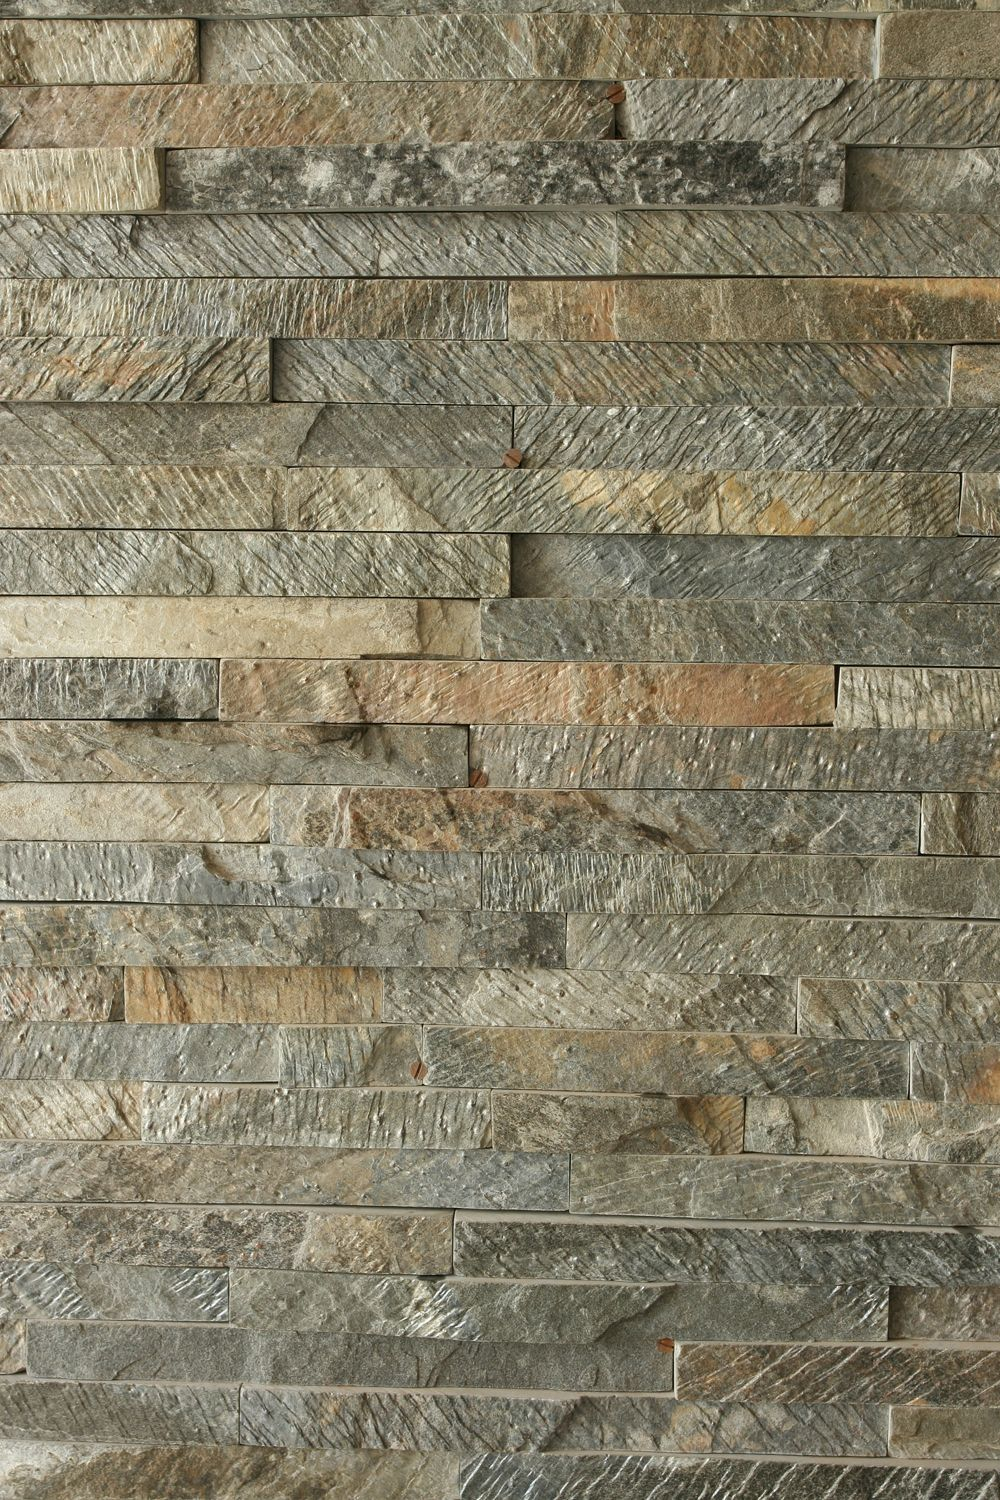 Stone marble granite exterior wall cladding view cladding wall - Mica Green Quartzite Wall Cladding Stone Design By Satyam Exports